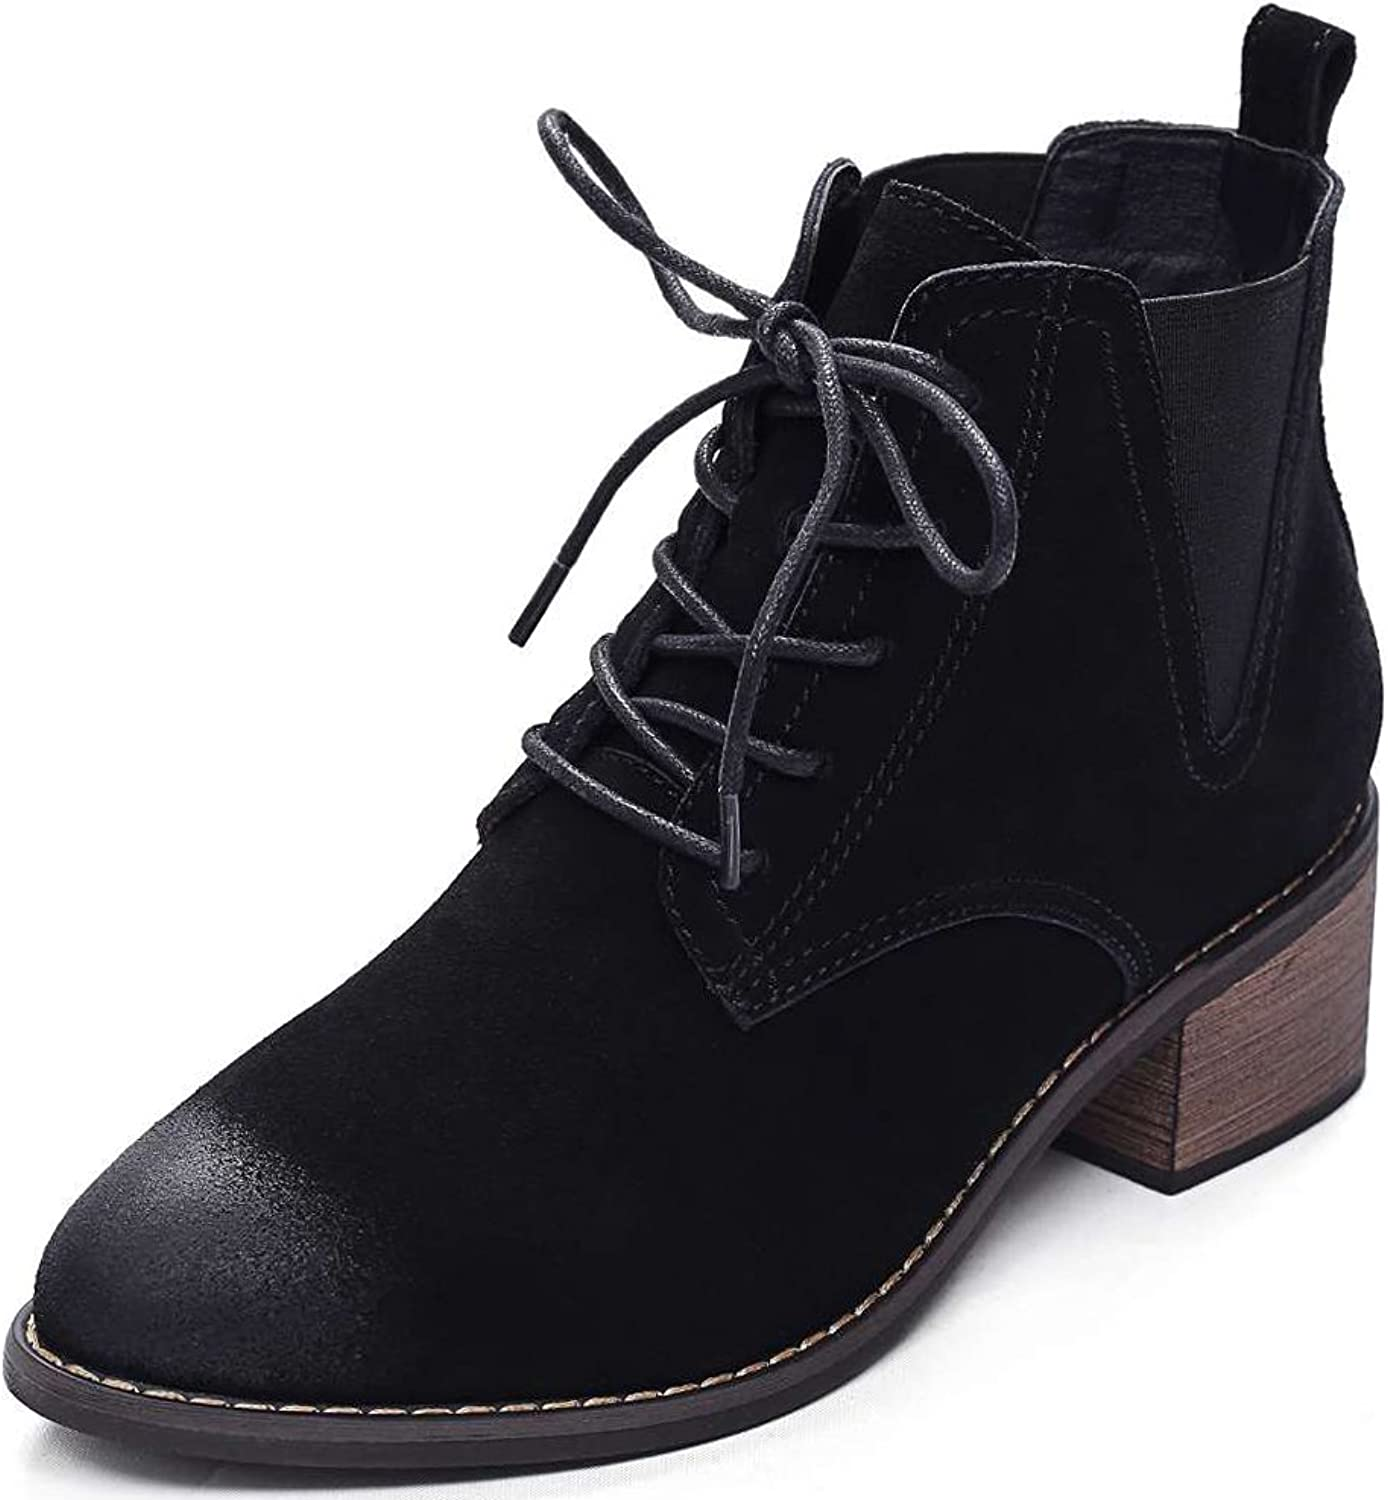 Rismart Women Nubuck Leather Vintage Ankle Boots Chunky Heel Lace Up Chelsea Boots Black SN0921 US7